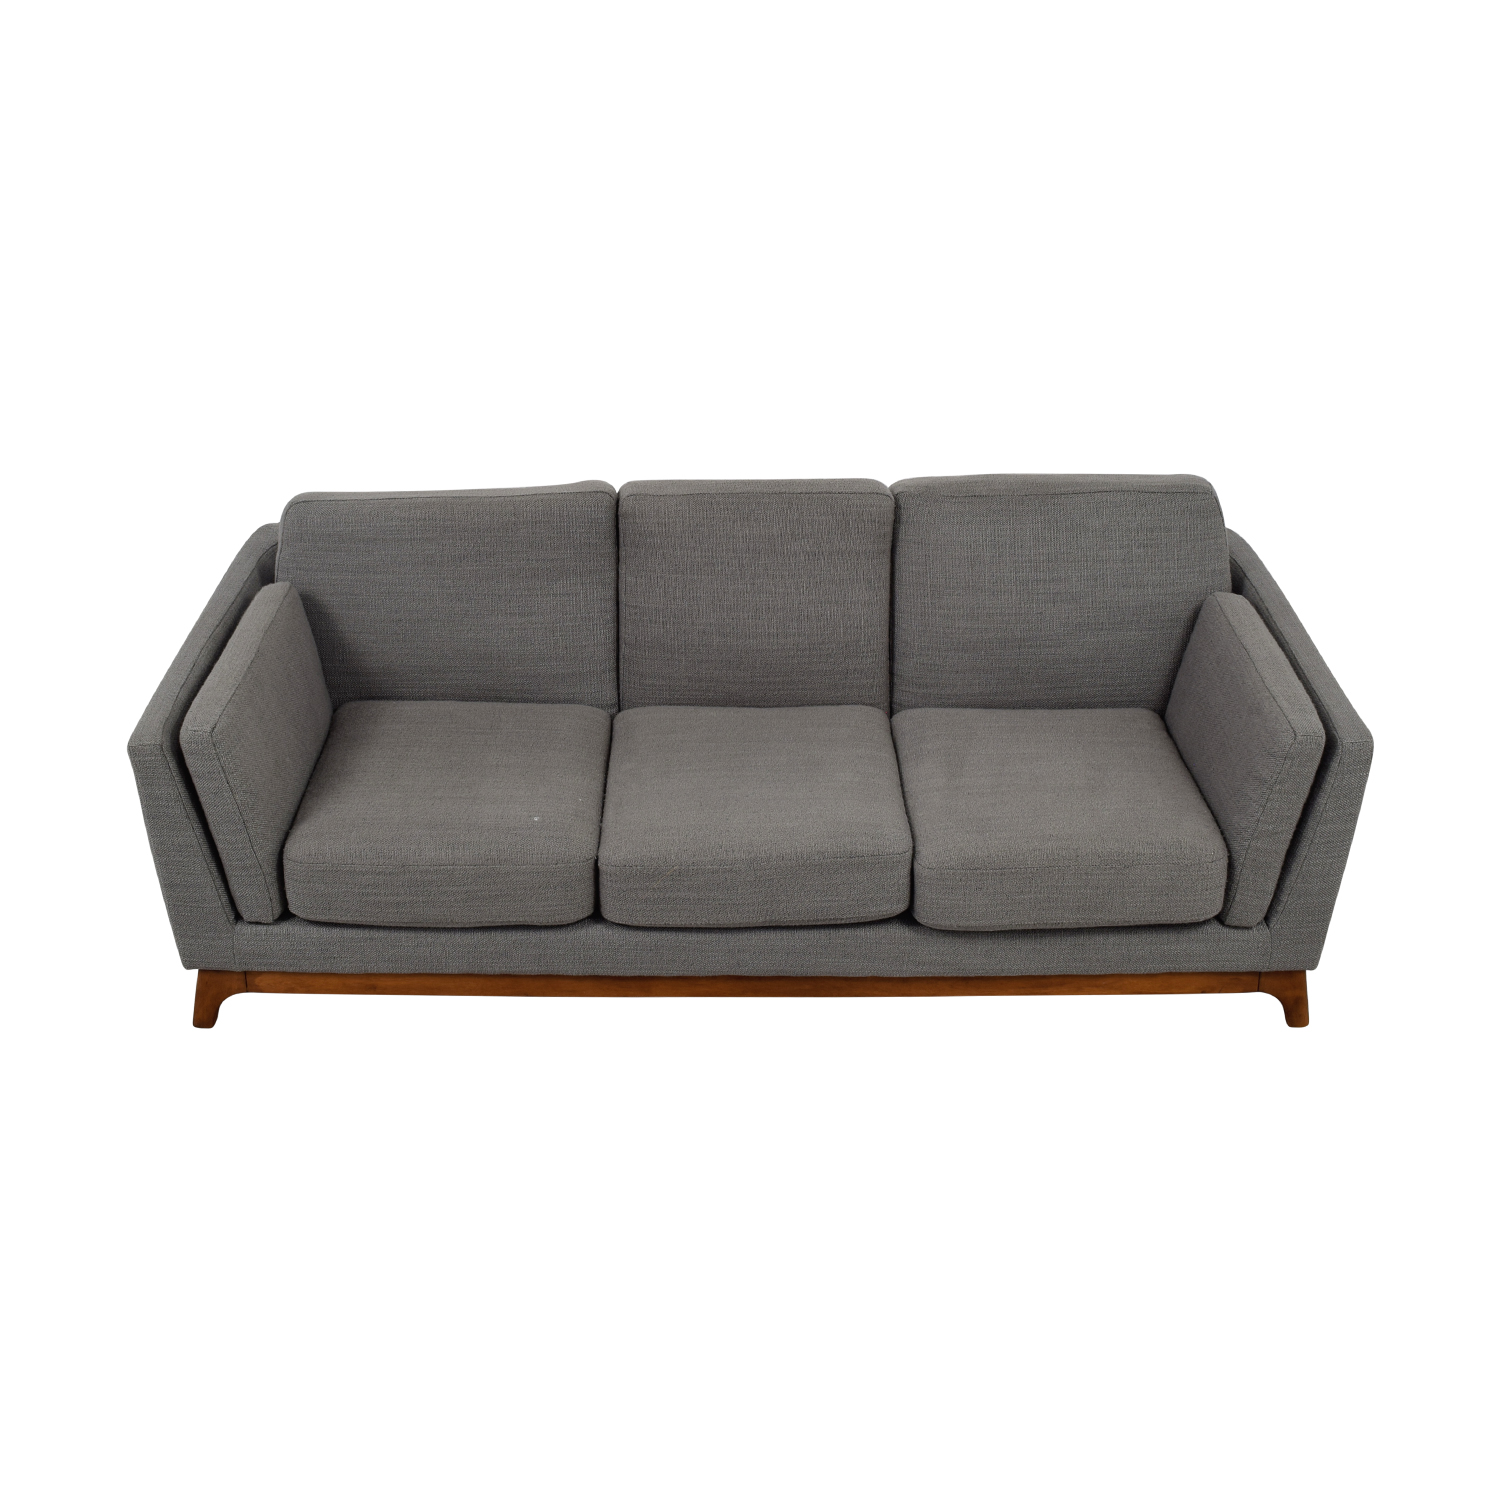 Article Article Ceni Grey Three Cushion Sofa